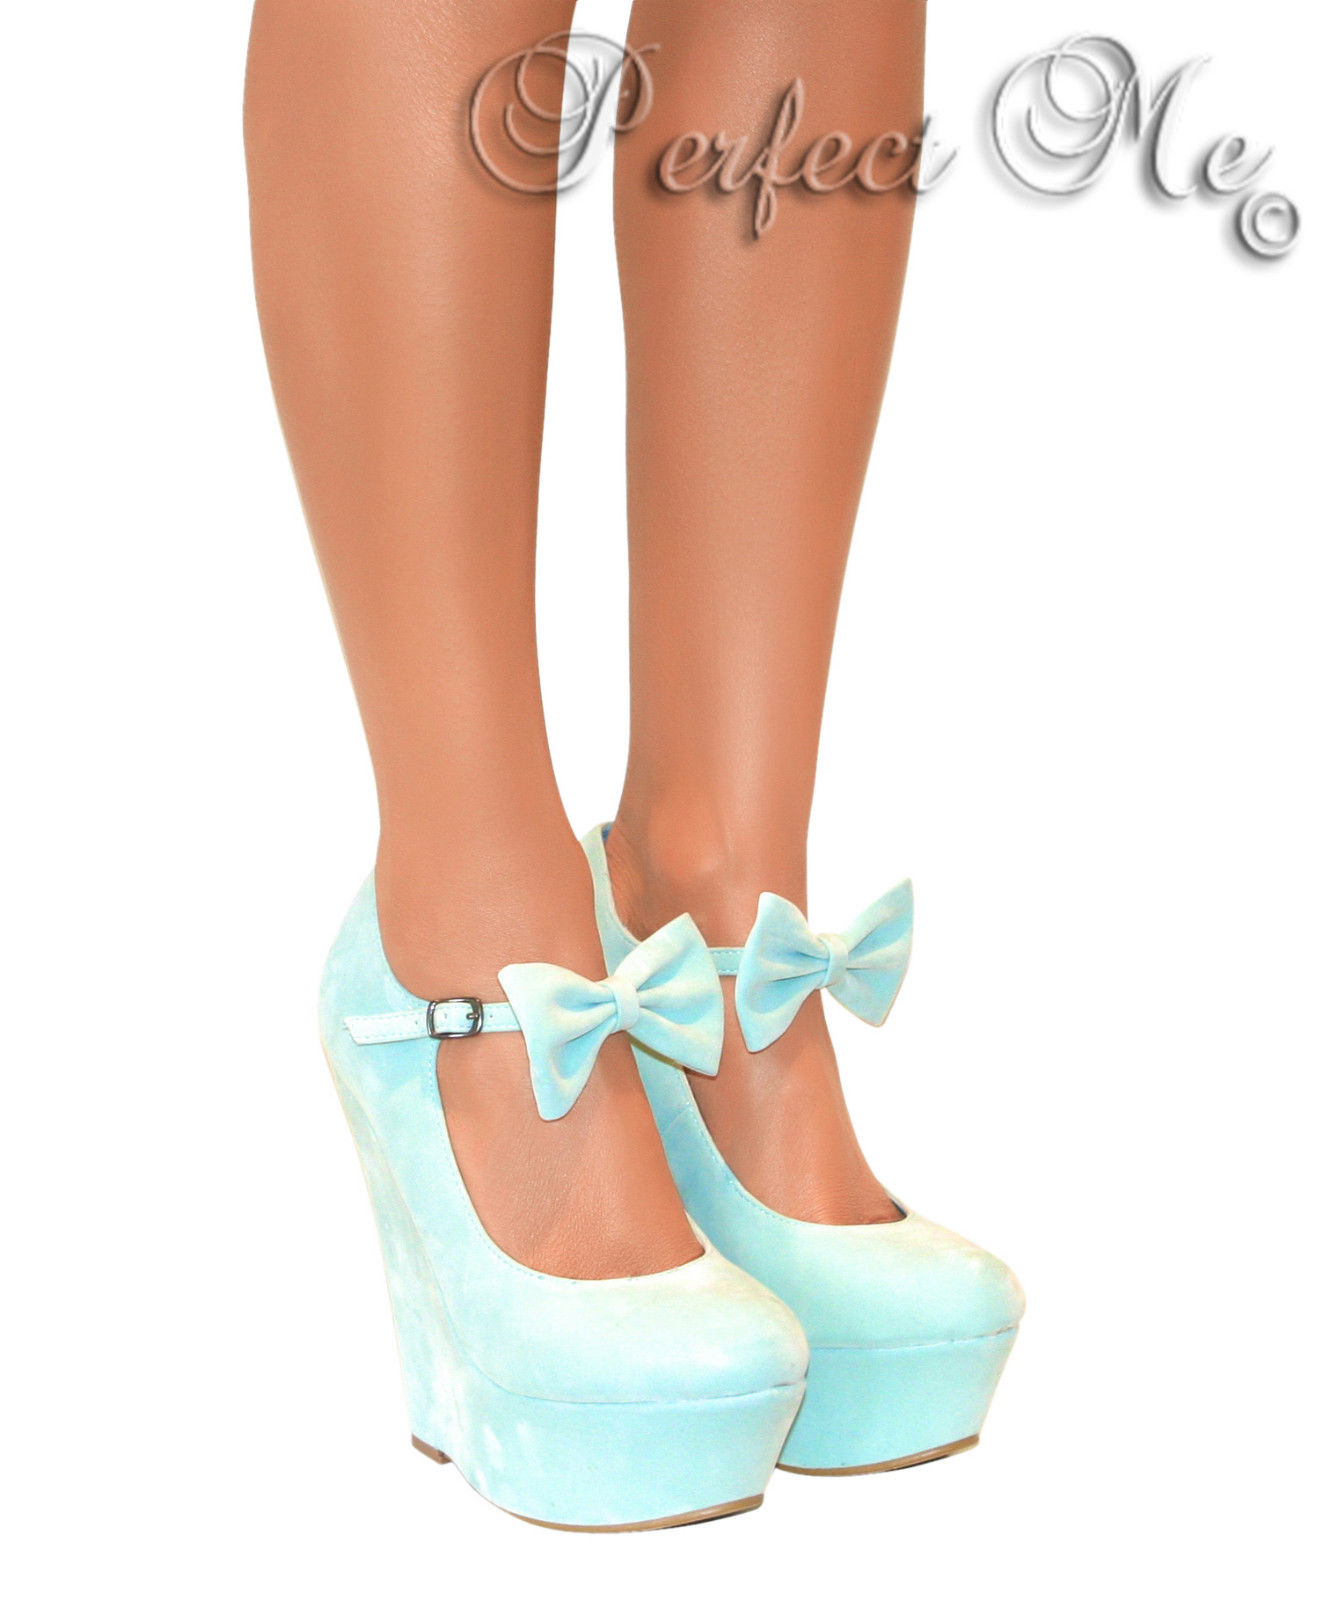 LADIES-MARY-JANE-BOW-HIGH-WEDGE-HEELS-SHOE-PLATFORM-STRAPPY-SUMMER-SANDAL-SIZE